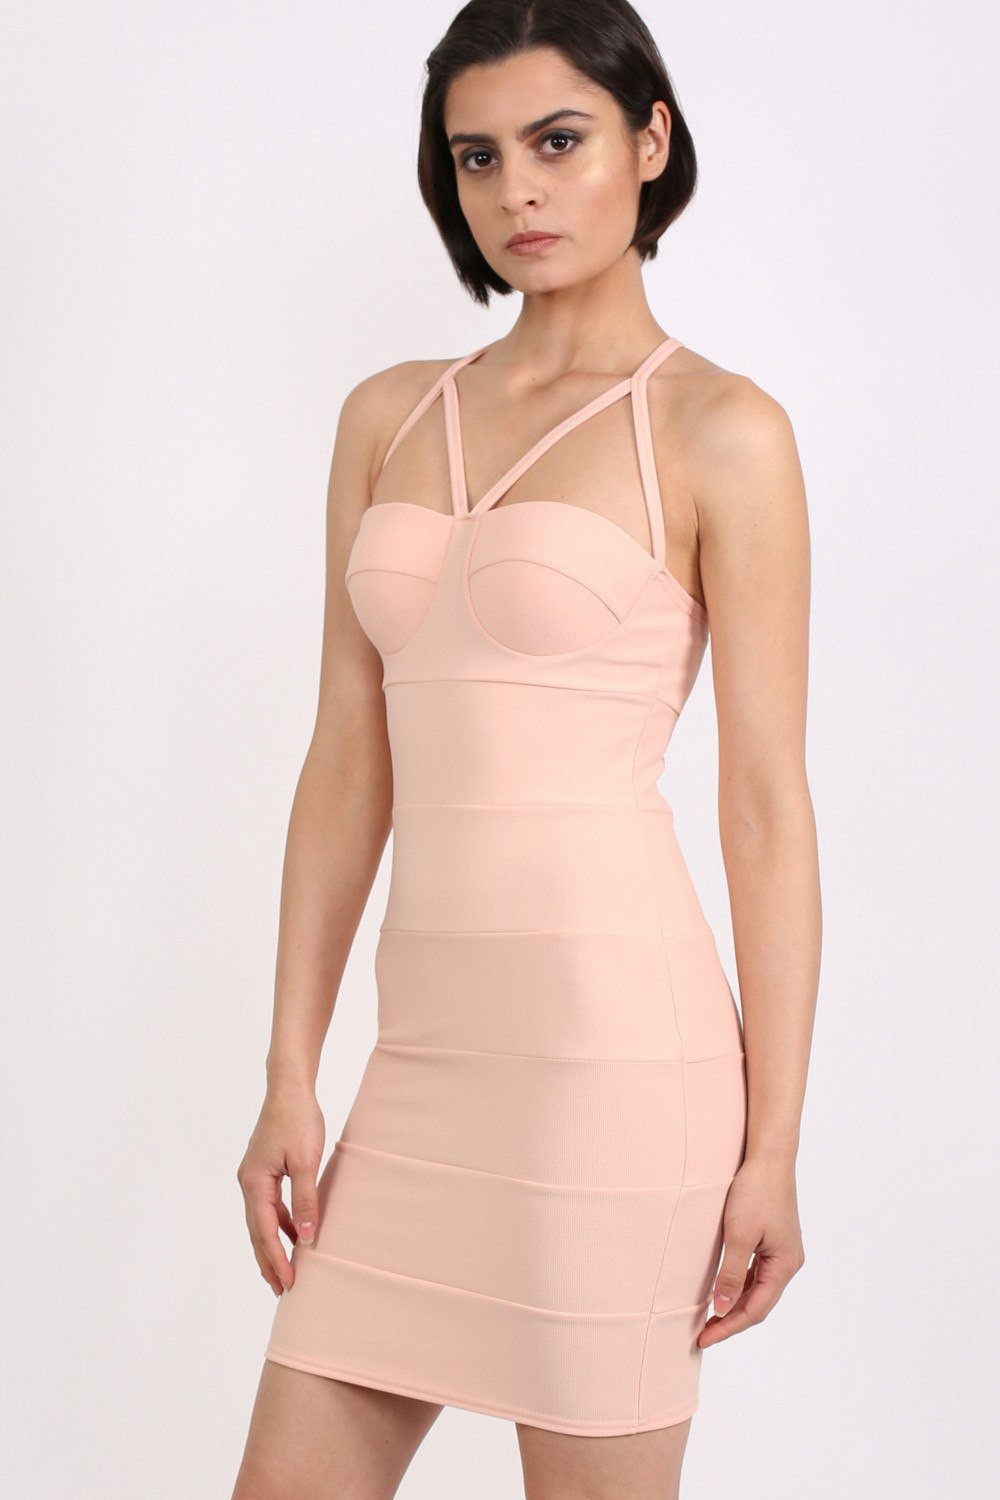 Strappy Ribbed Bandage Bodycon Mini Dress in Nude 0